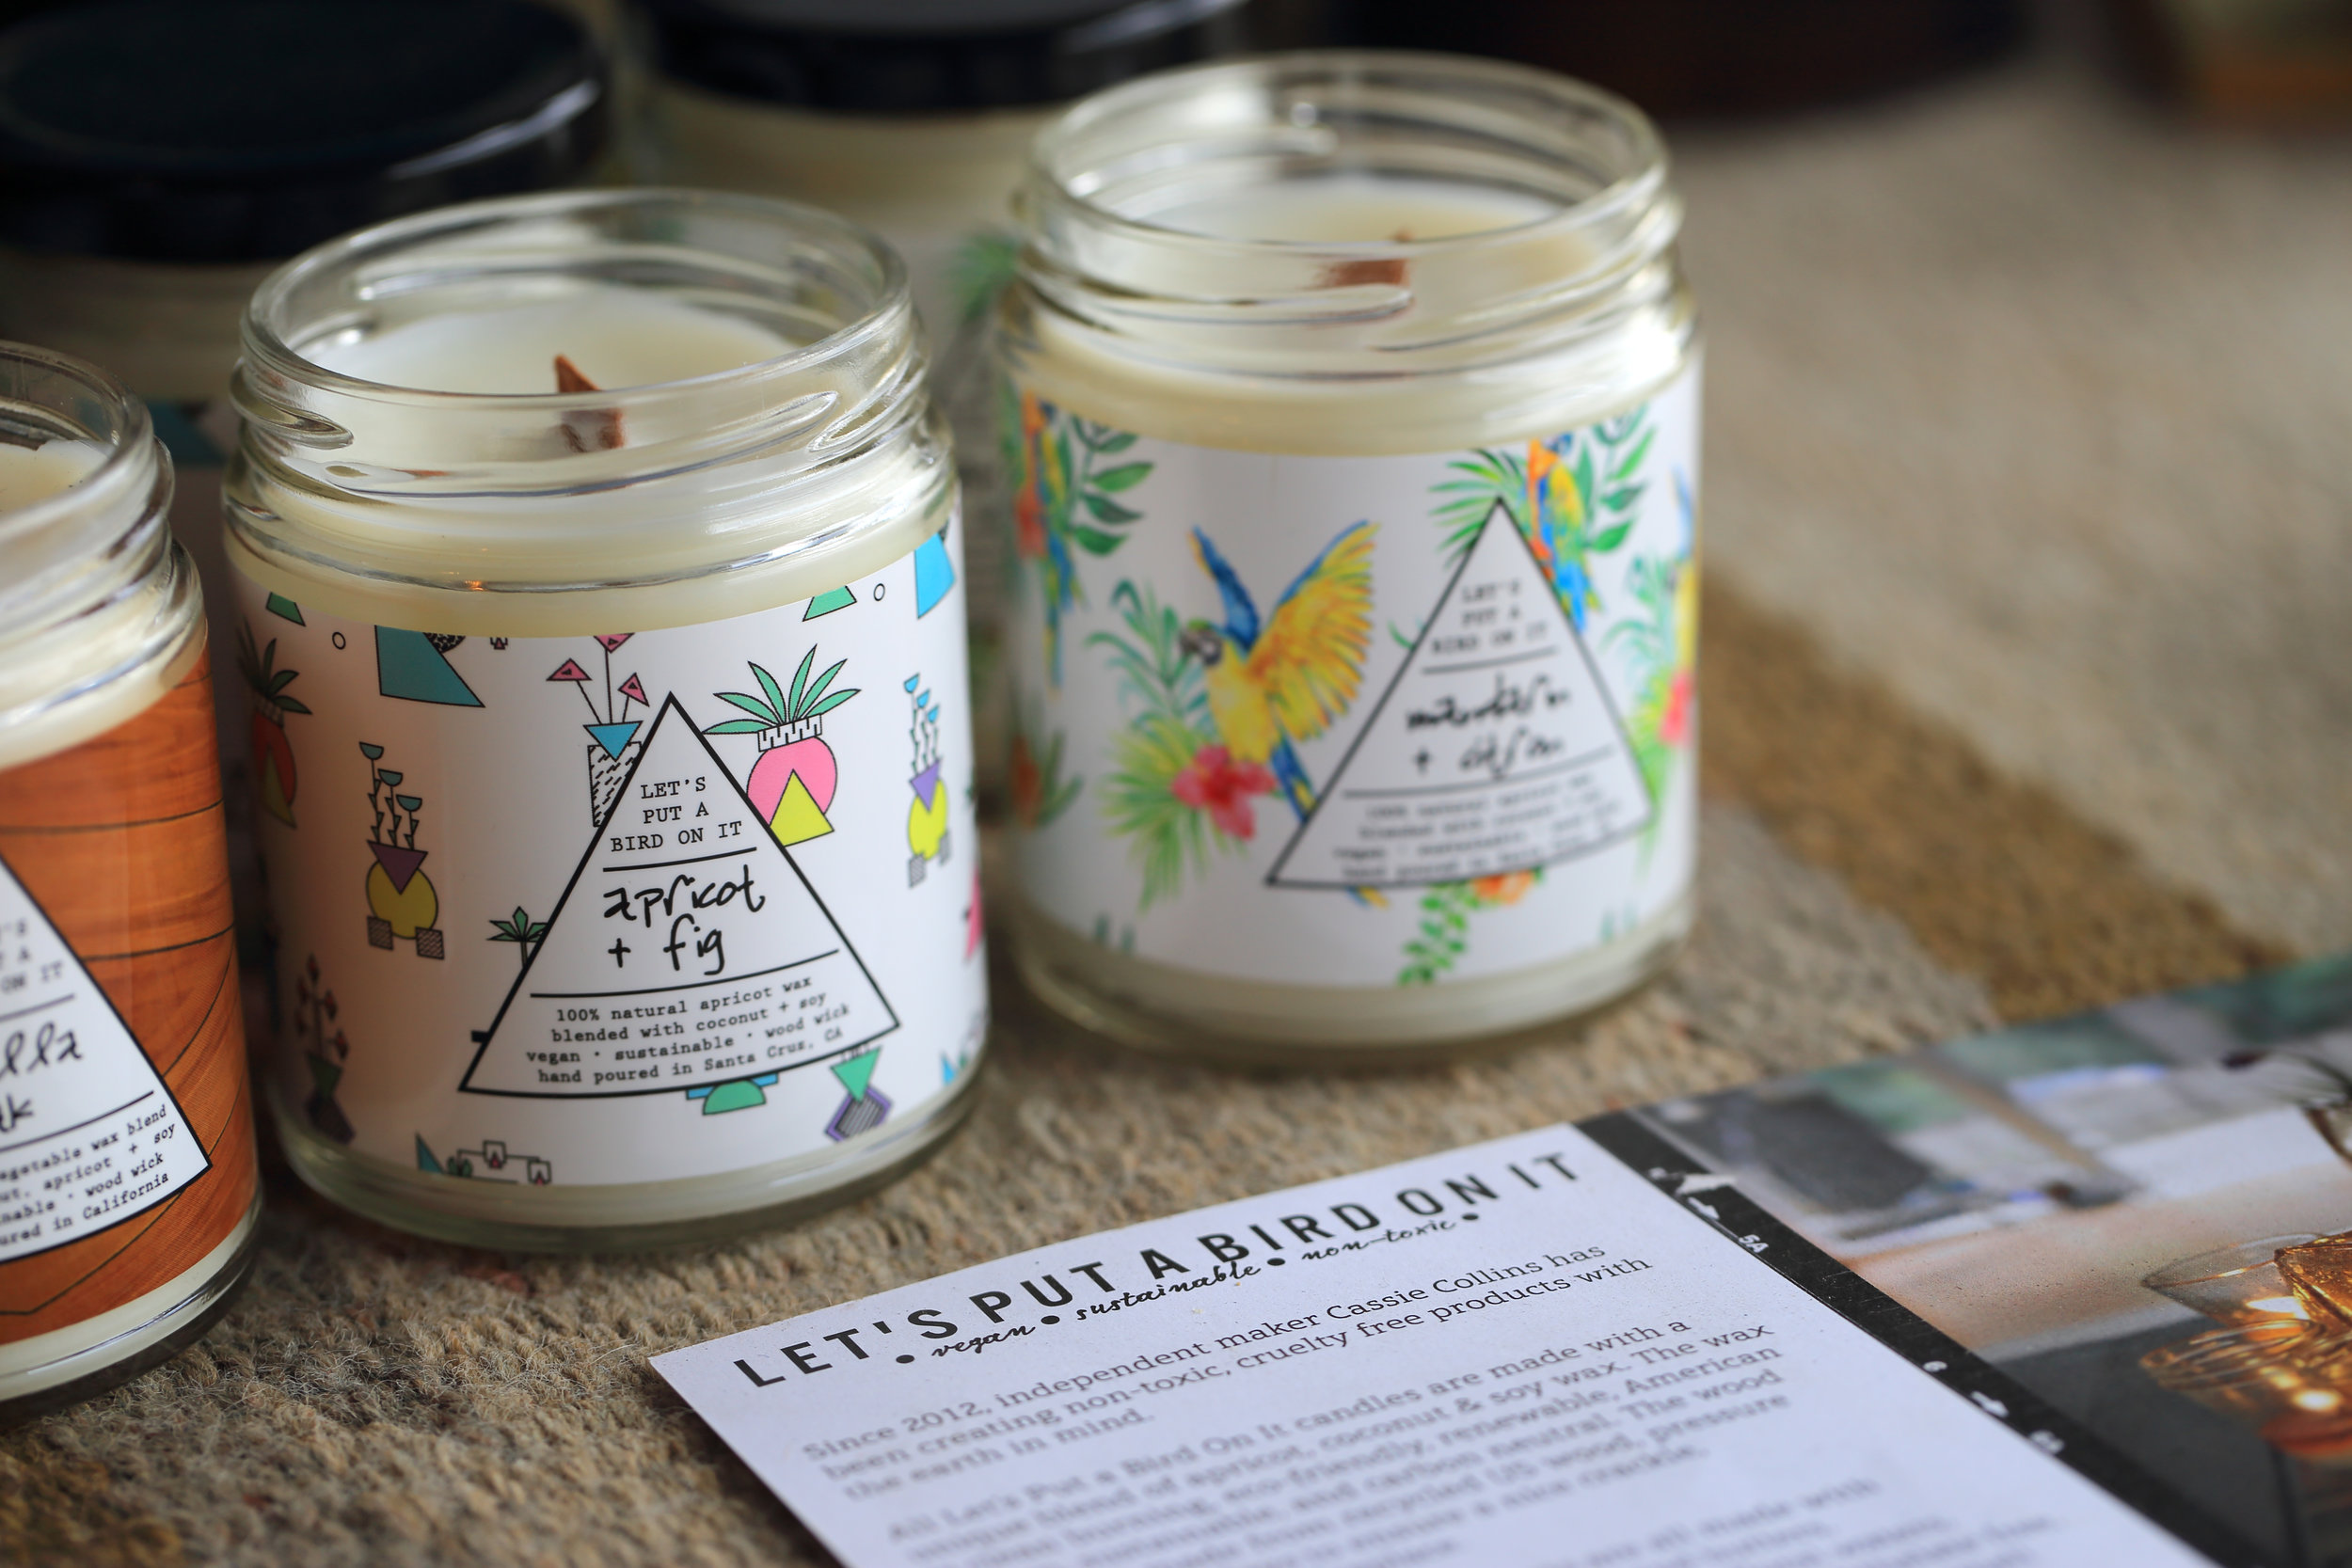 California-made candles